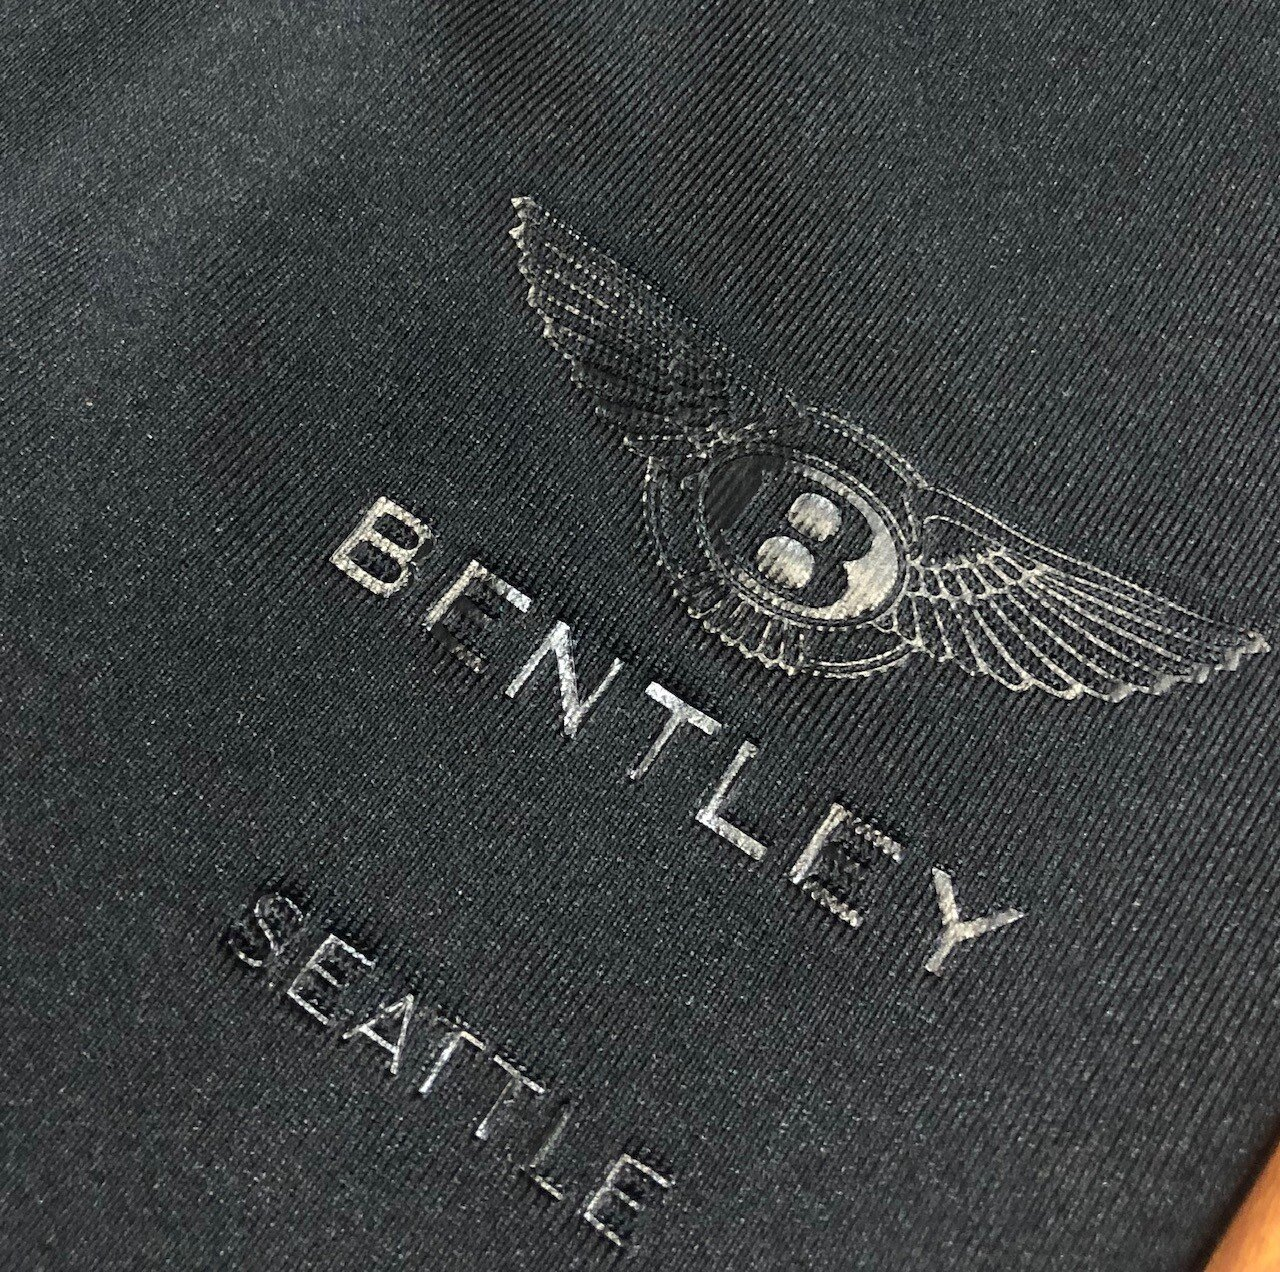 logounltd_laser_etching_embroidery_screen_printing_apparel_uniform_custom_tshirts_t_shirt_kirkland_bellevue_seattle_redmond_woodinville_branded_merchandise_promotional_products_logo_unltd_deboss_bentley (2).jpg